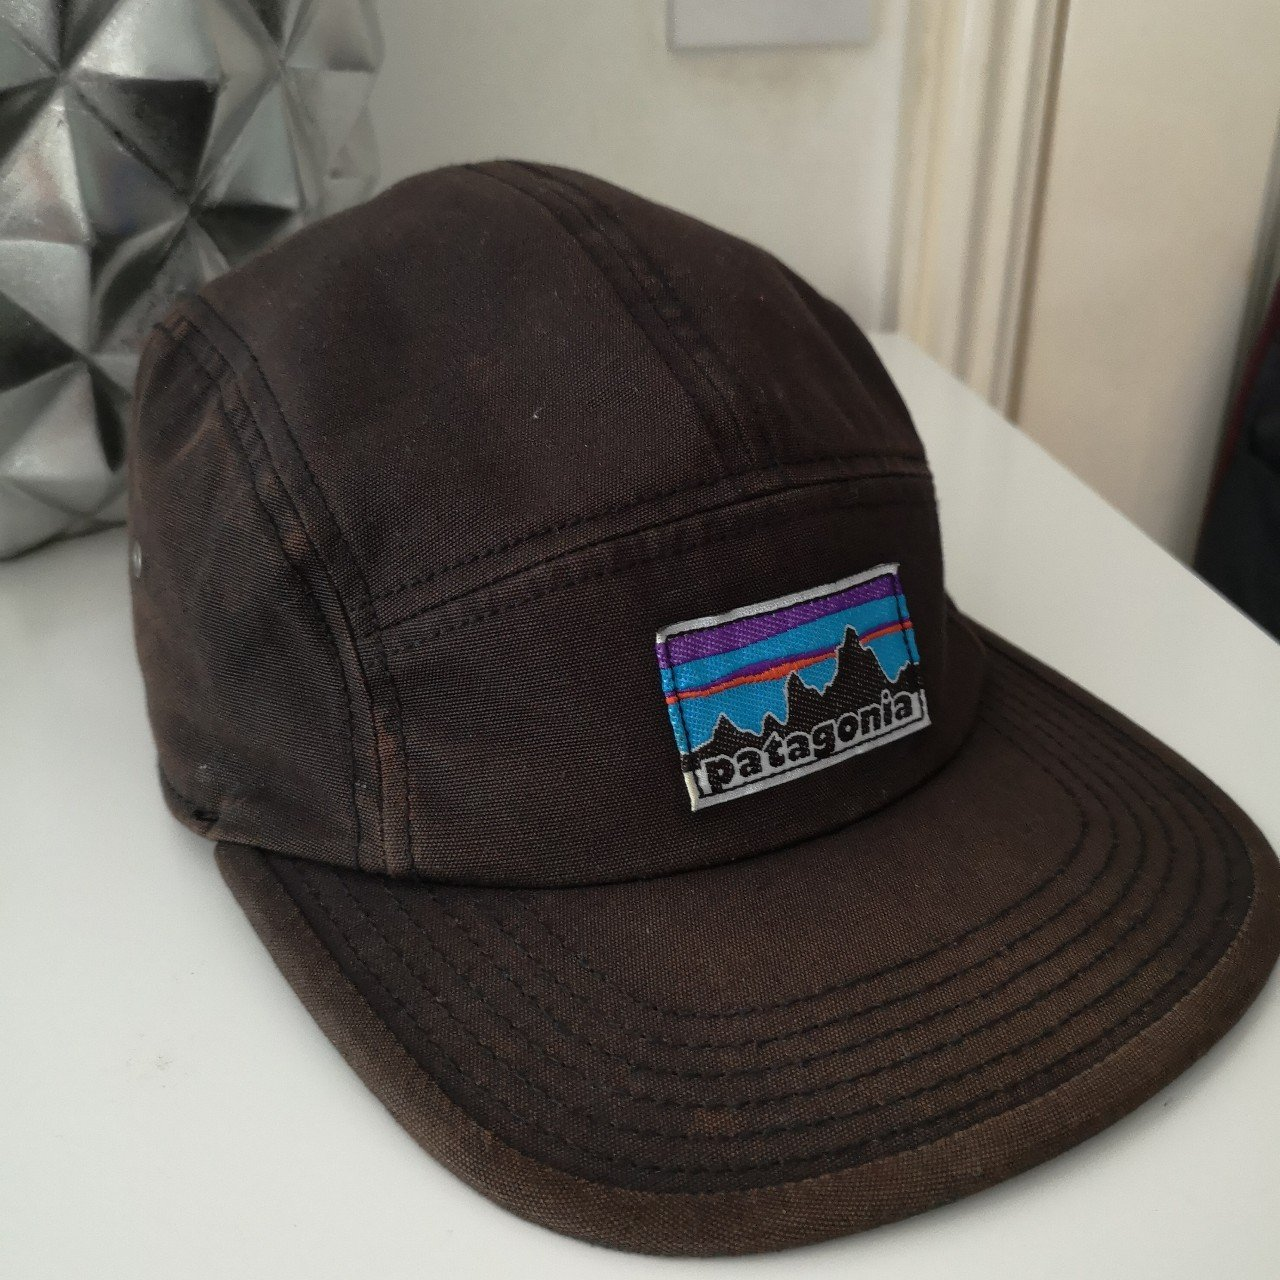 0e3a6cc0fde 💎Patagonia hat💎 100% cotton 8 10 condition Fits all free - Depop